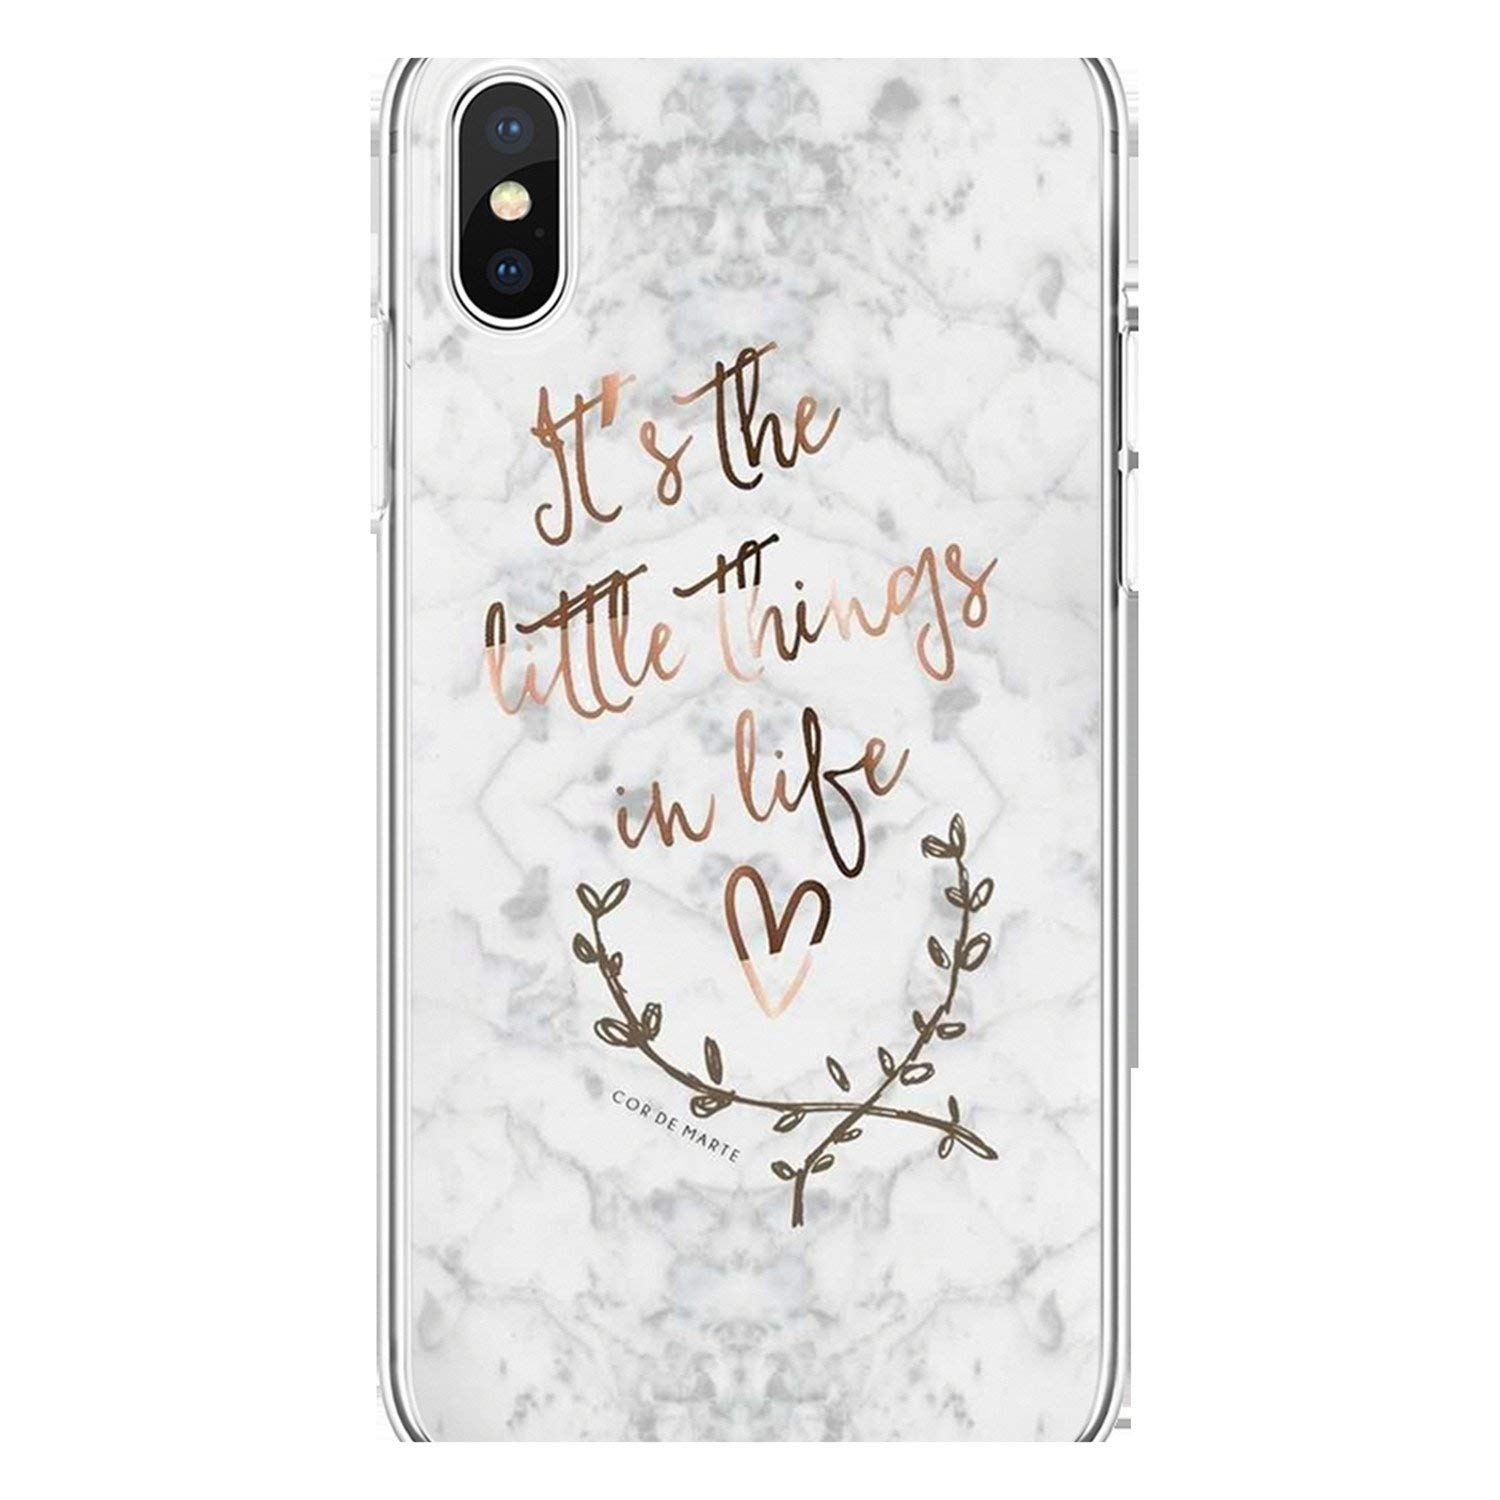 Amazon.com: Marble for Samsung Galaxy A3 A5 A8 J3 J5 J7 S6 ...